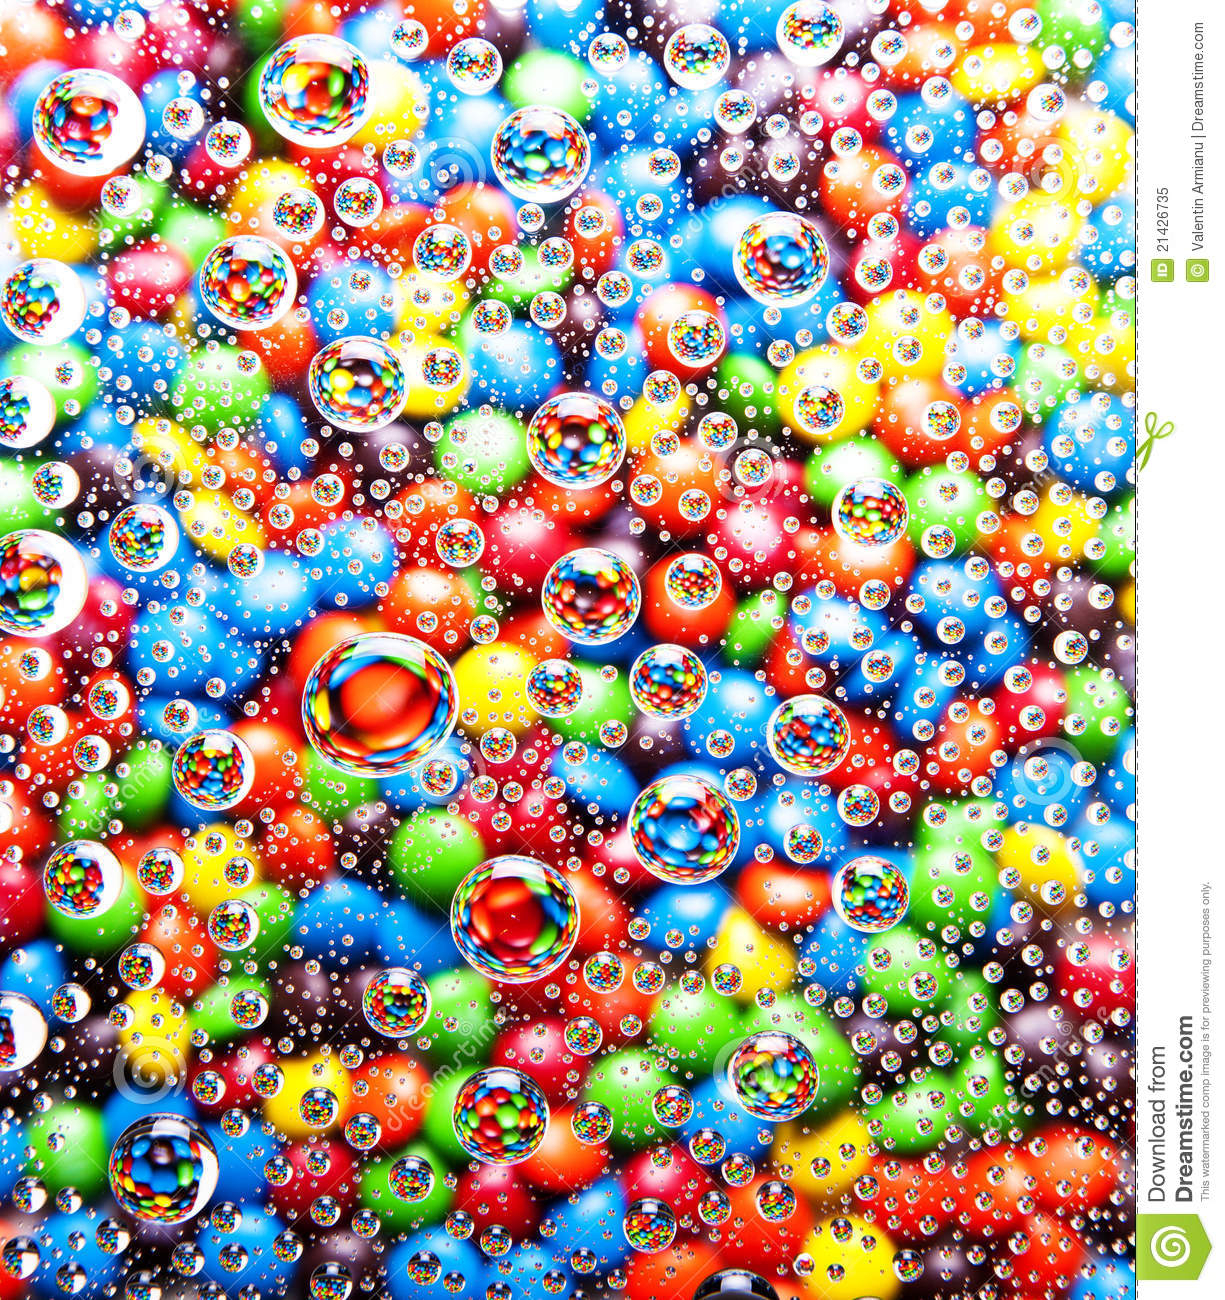 Colorful Bubbles Background Royalty Free Stock Photo - Image: 21426735